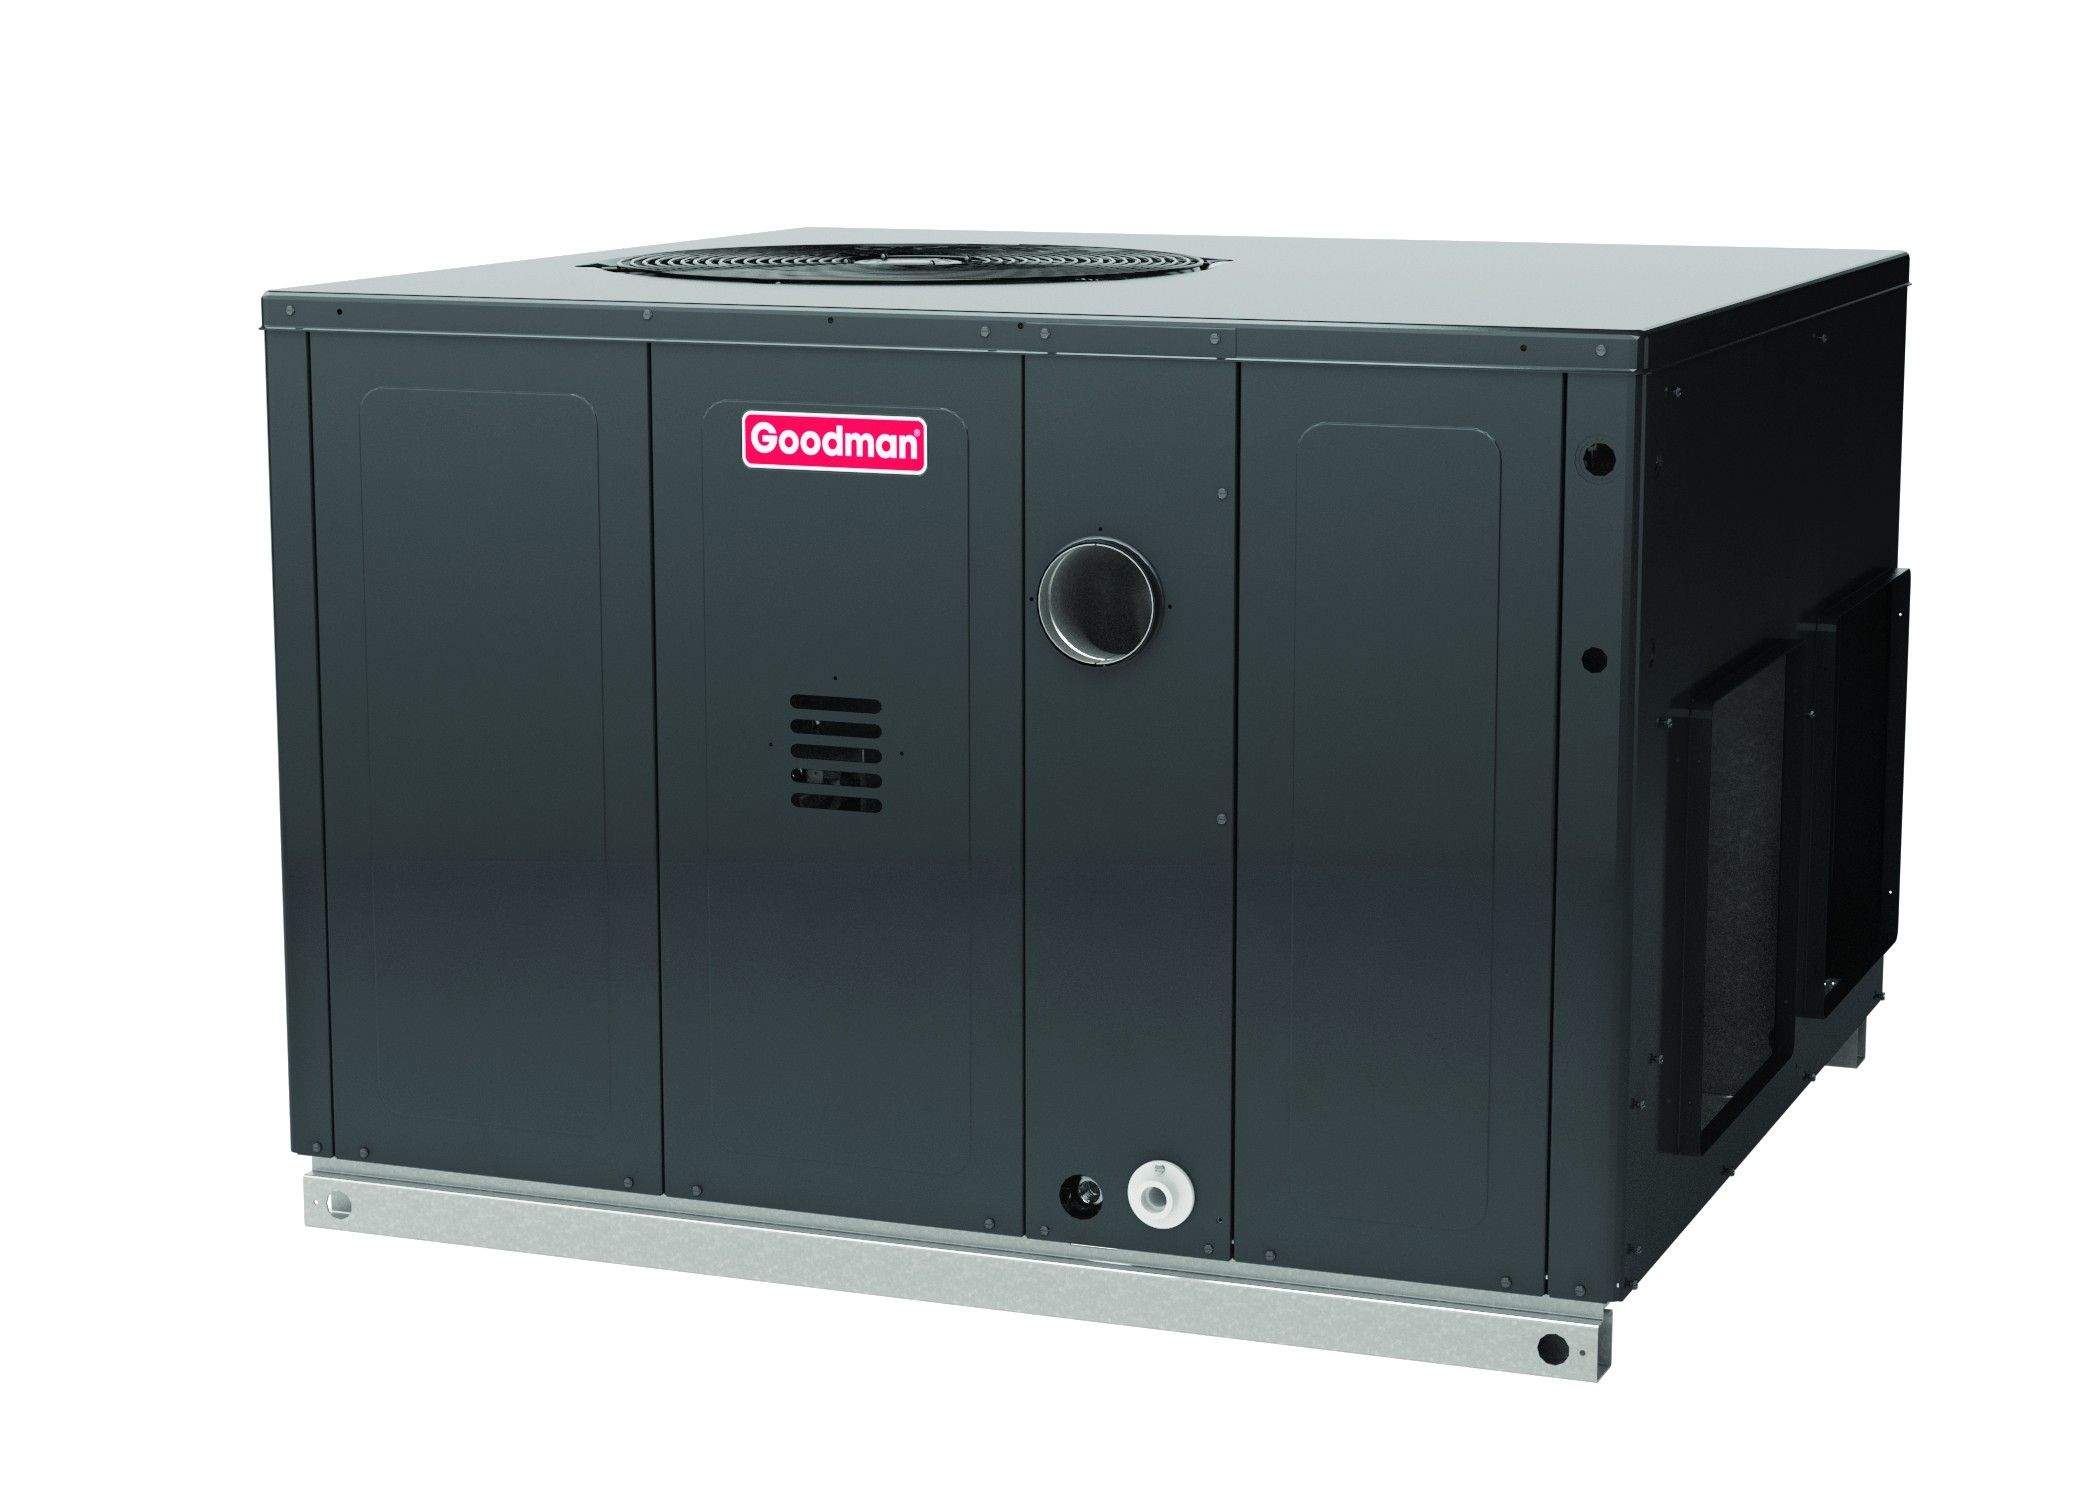 #C6054A Goodman 2.5 Ton 14 SEER 60K BTU Packge Unit With Gas Heat  Most Effective 12085 Goodman Air Conditioning Units pictures with 2100x1500 px on helpvideos.info - Air Conditioners, Air Coolers and more